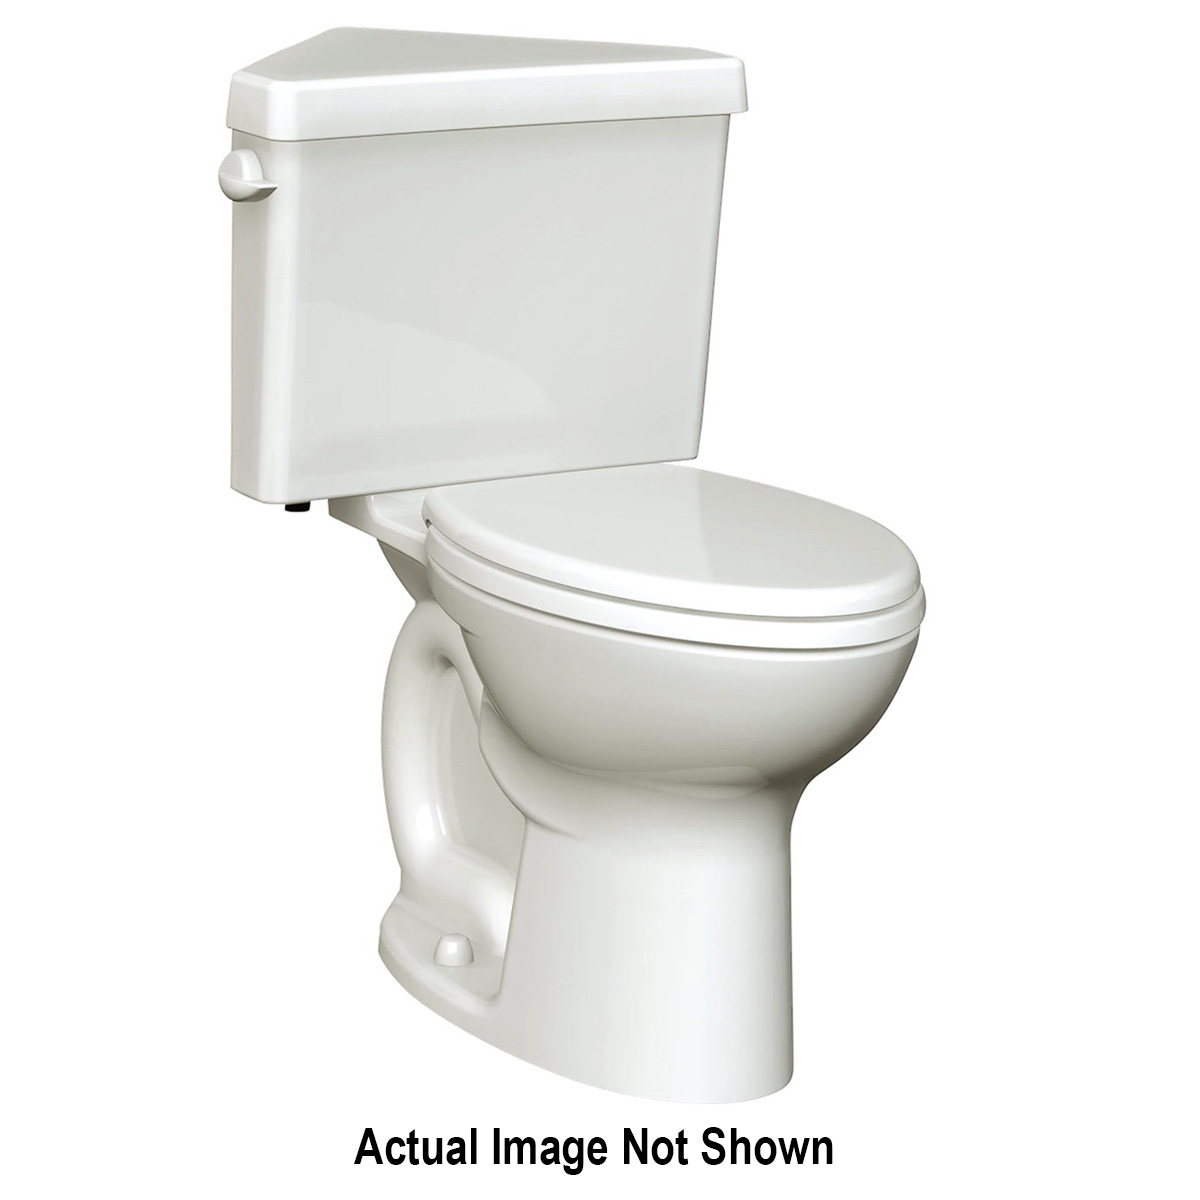 American Standard 3517B101.020 Cadet® Pro™ Right Height™ Toilet Bowl, Round Front, 8 x 9 in Water Surface, 16-1/2 in H Rim, 2-1/8 in Trapway, Import